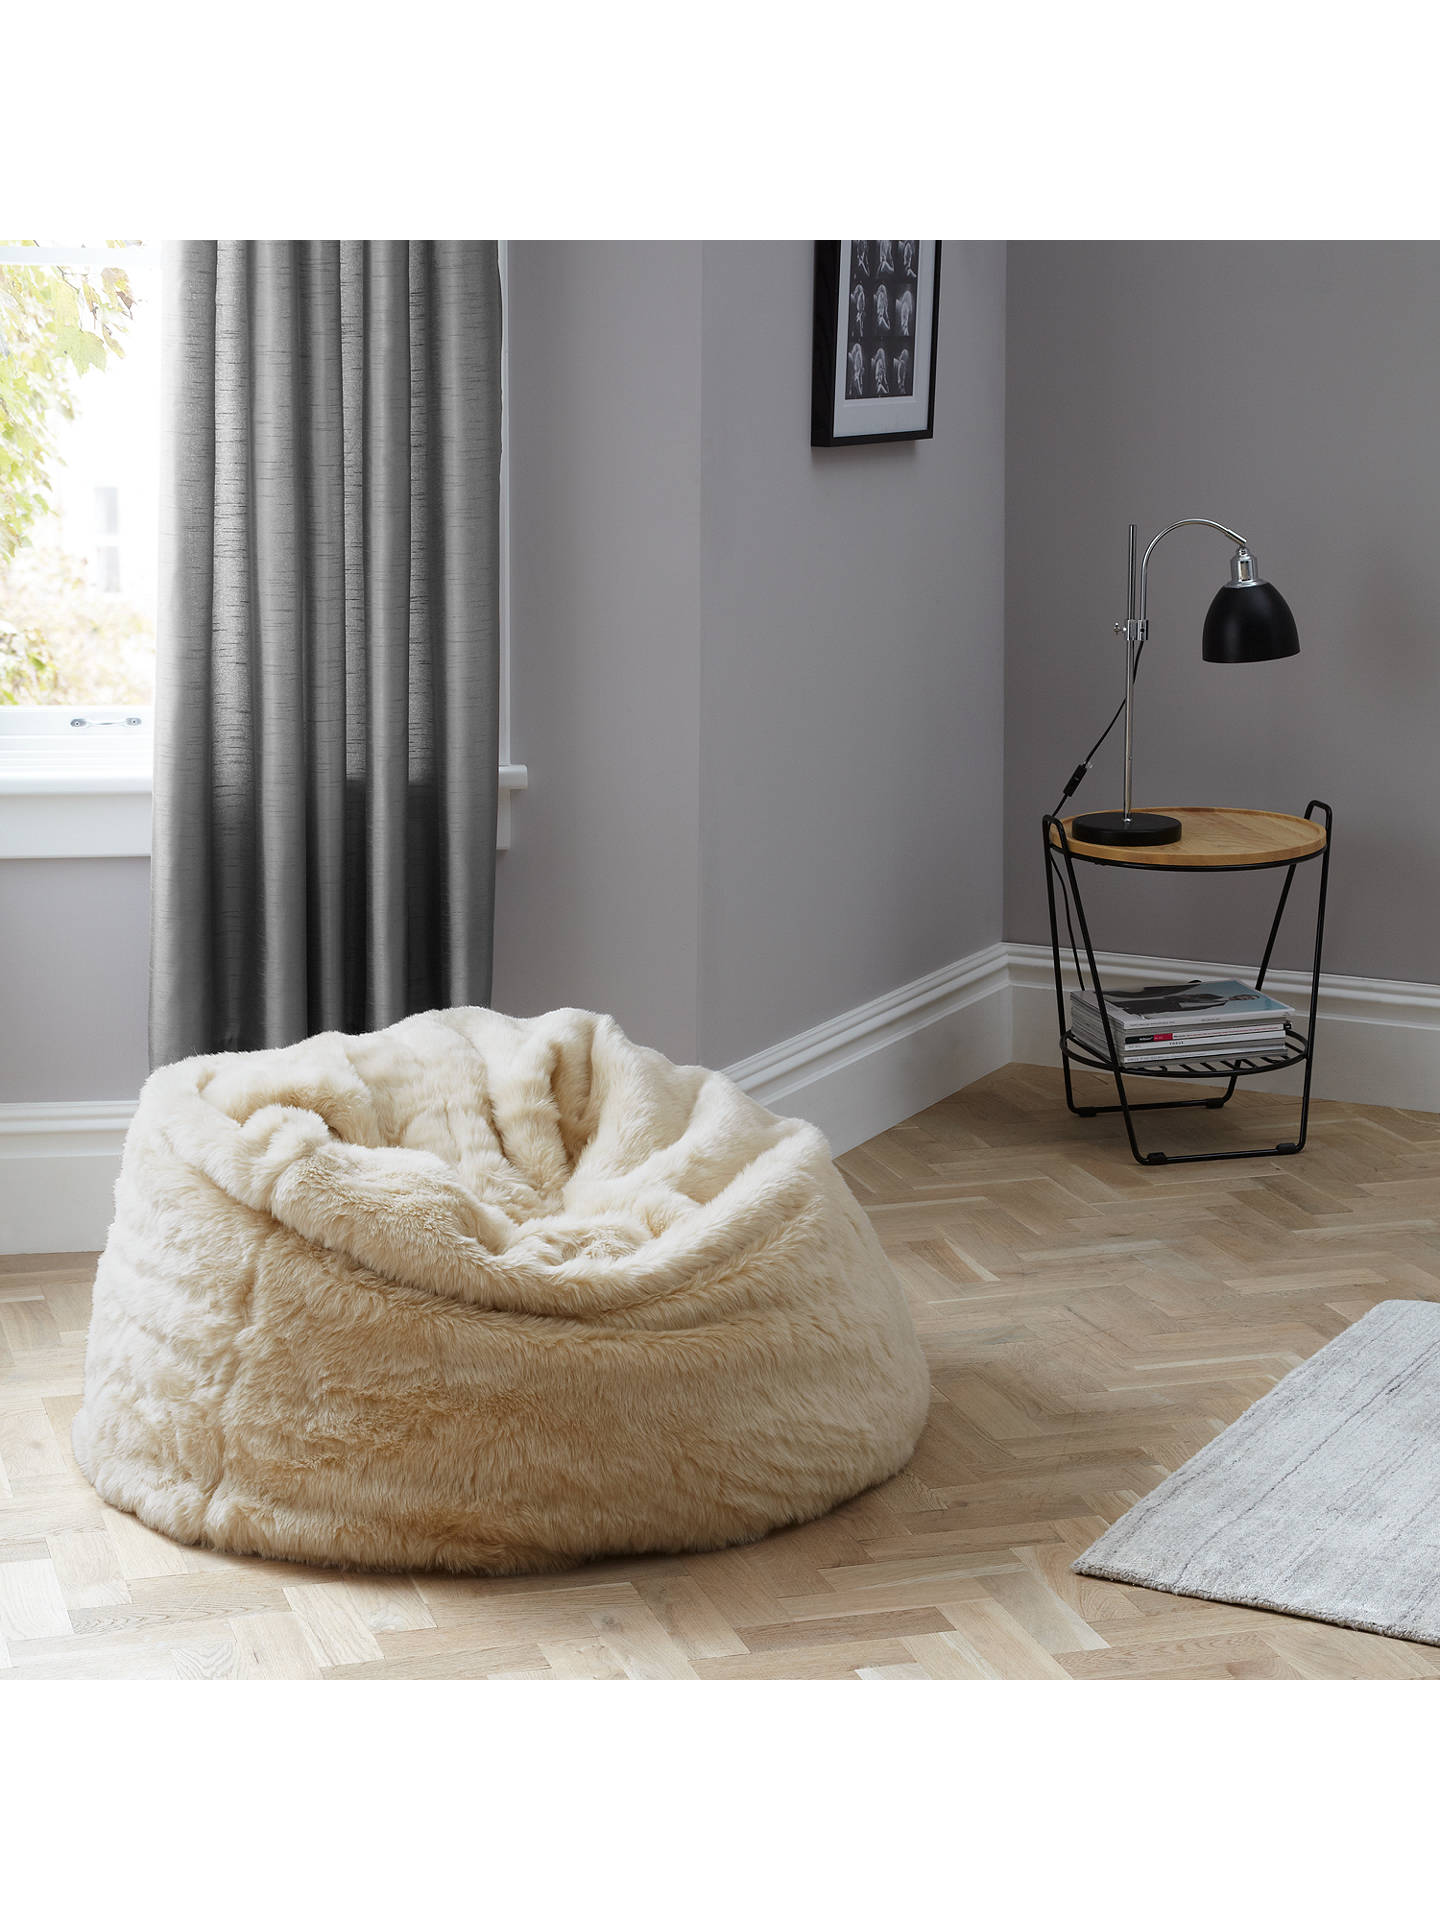 Remarkable John Lewis Extra Large Faux Fur Bean Bag At John Lewis Squirreltailoven Fun Painted Chair Ideas Images Squirreltailovenorg